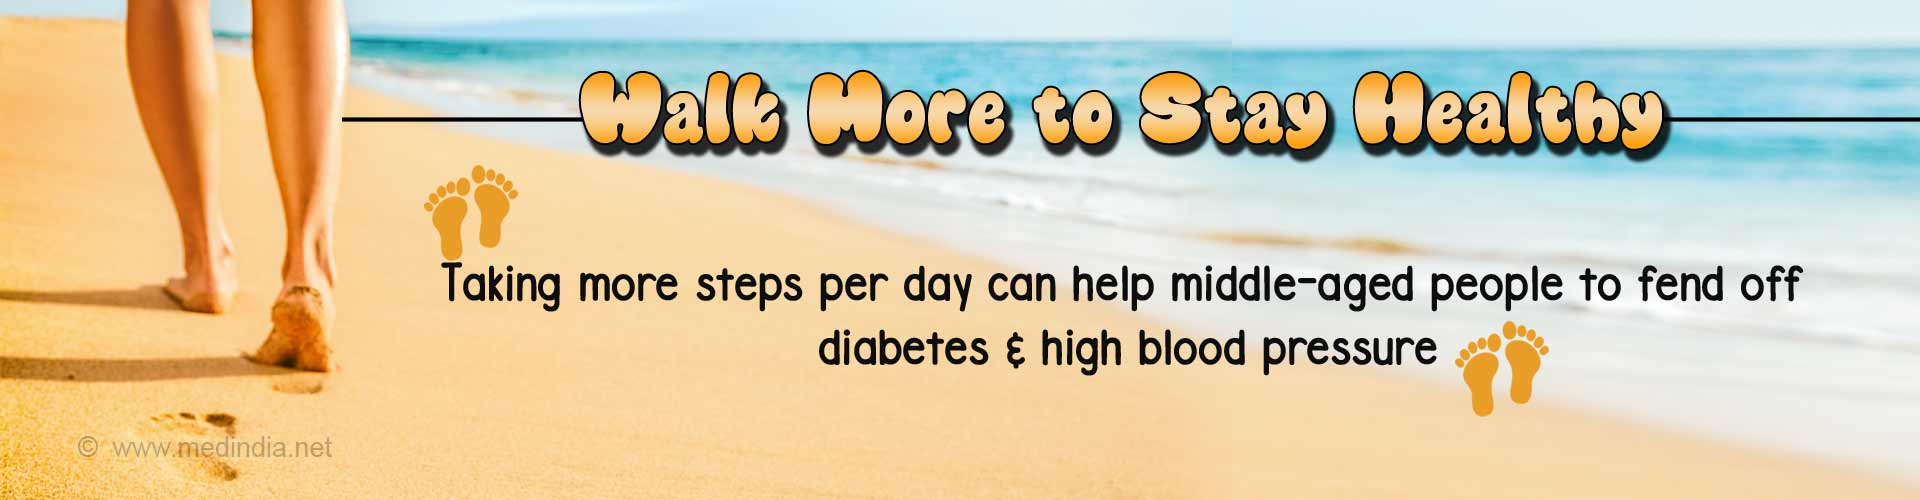 Take More Steps a Day to Fight Diabetes, High Blood Pressure